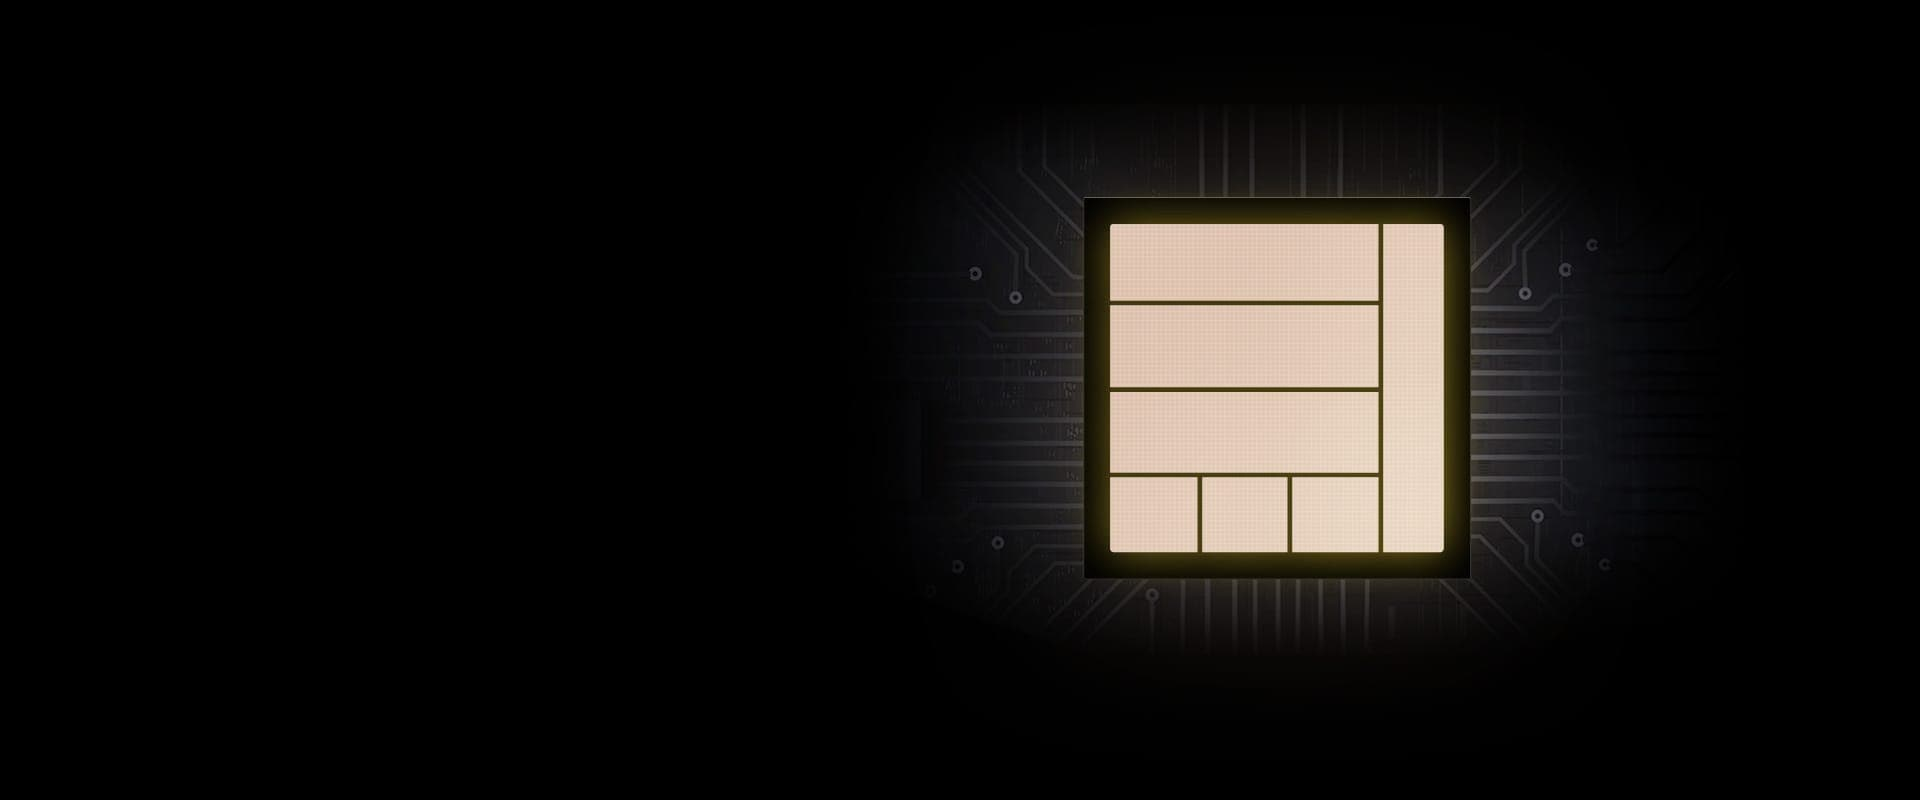 An illustration of a chip providing powerful performance to Galaxy S20 FE.